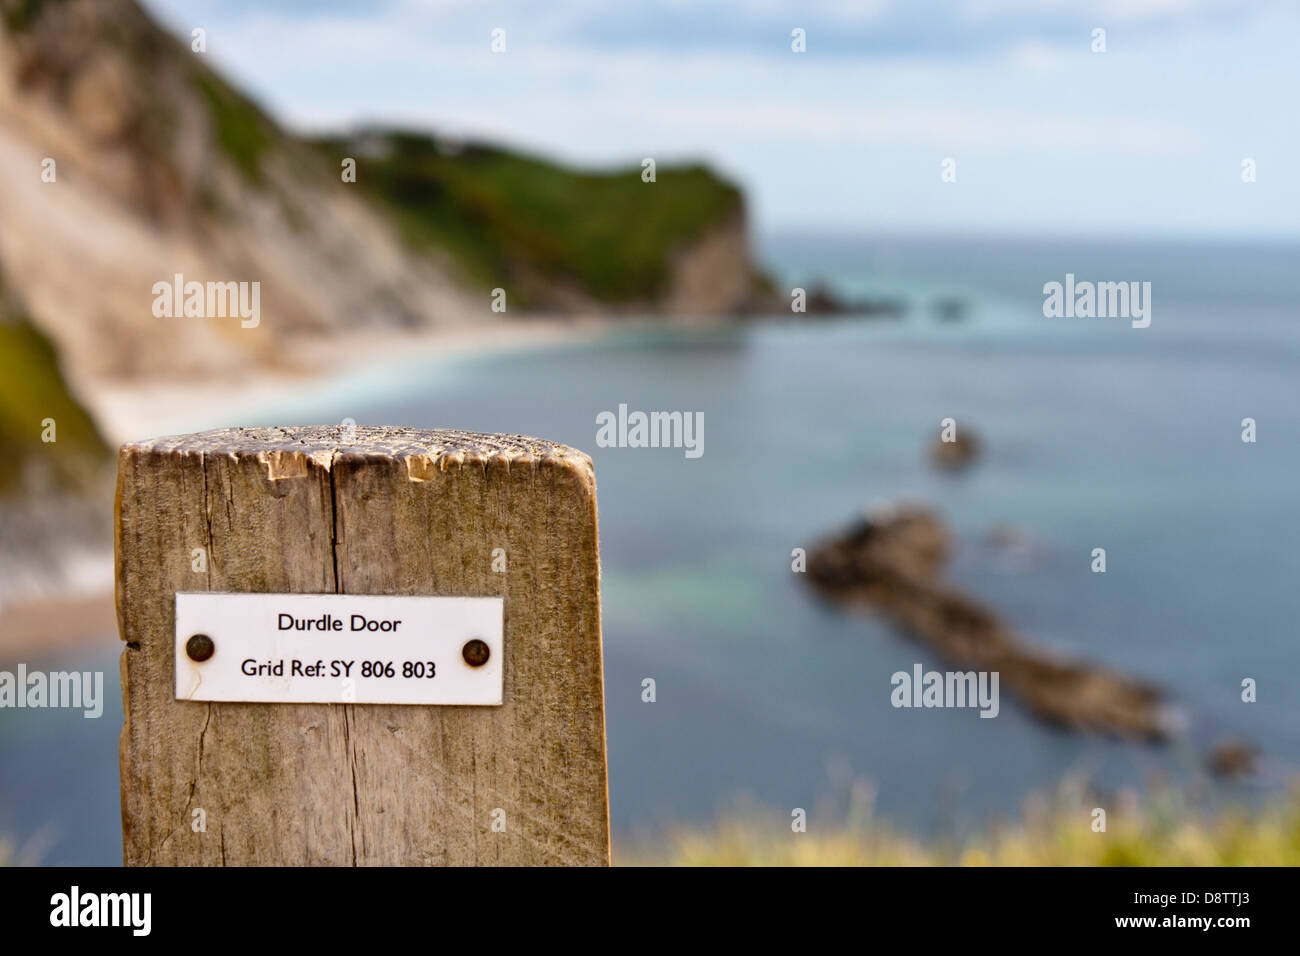 Grid reference on fence post giving map location for walkers at Durdle Door in Dorset. Out of focus background. - Stock Image